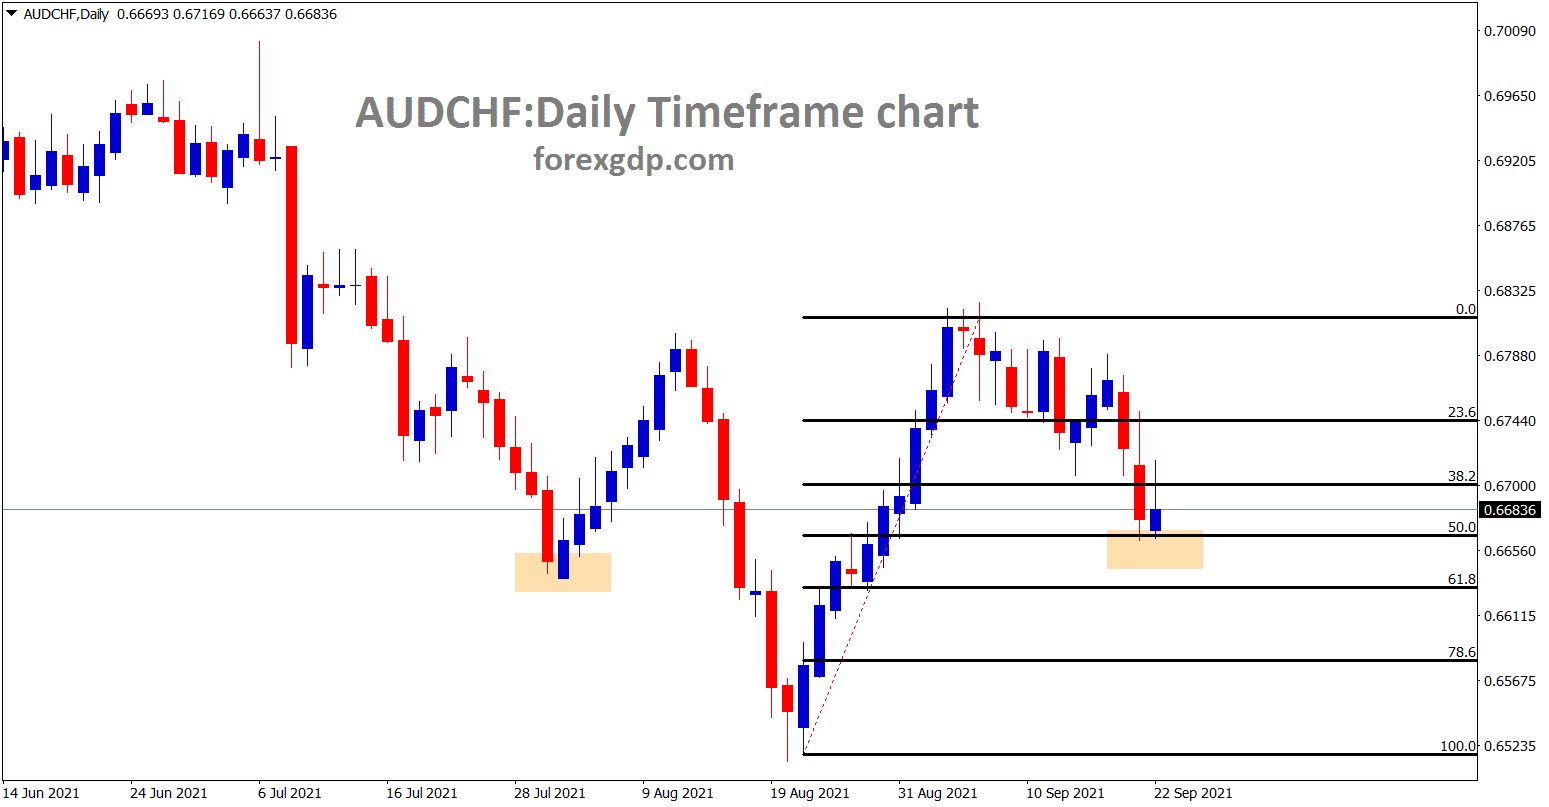 AUDCHF made a retracement of 50 wait for reversal. In another view trying to form a inverse head and shoulder pattern